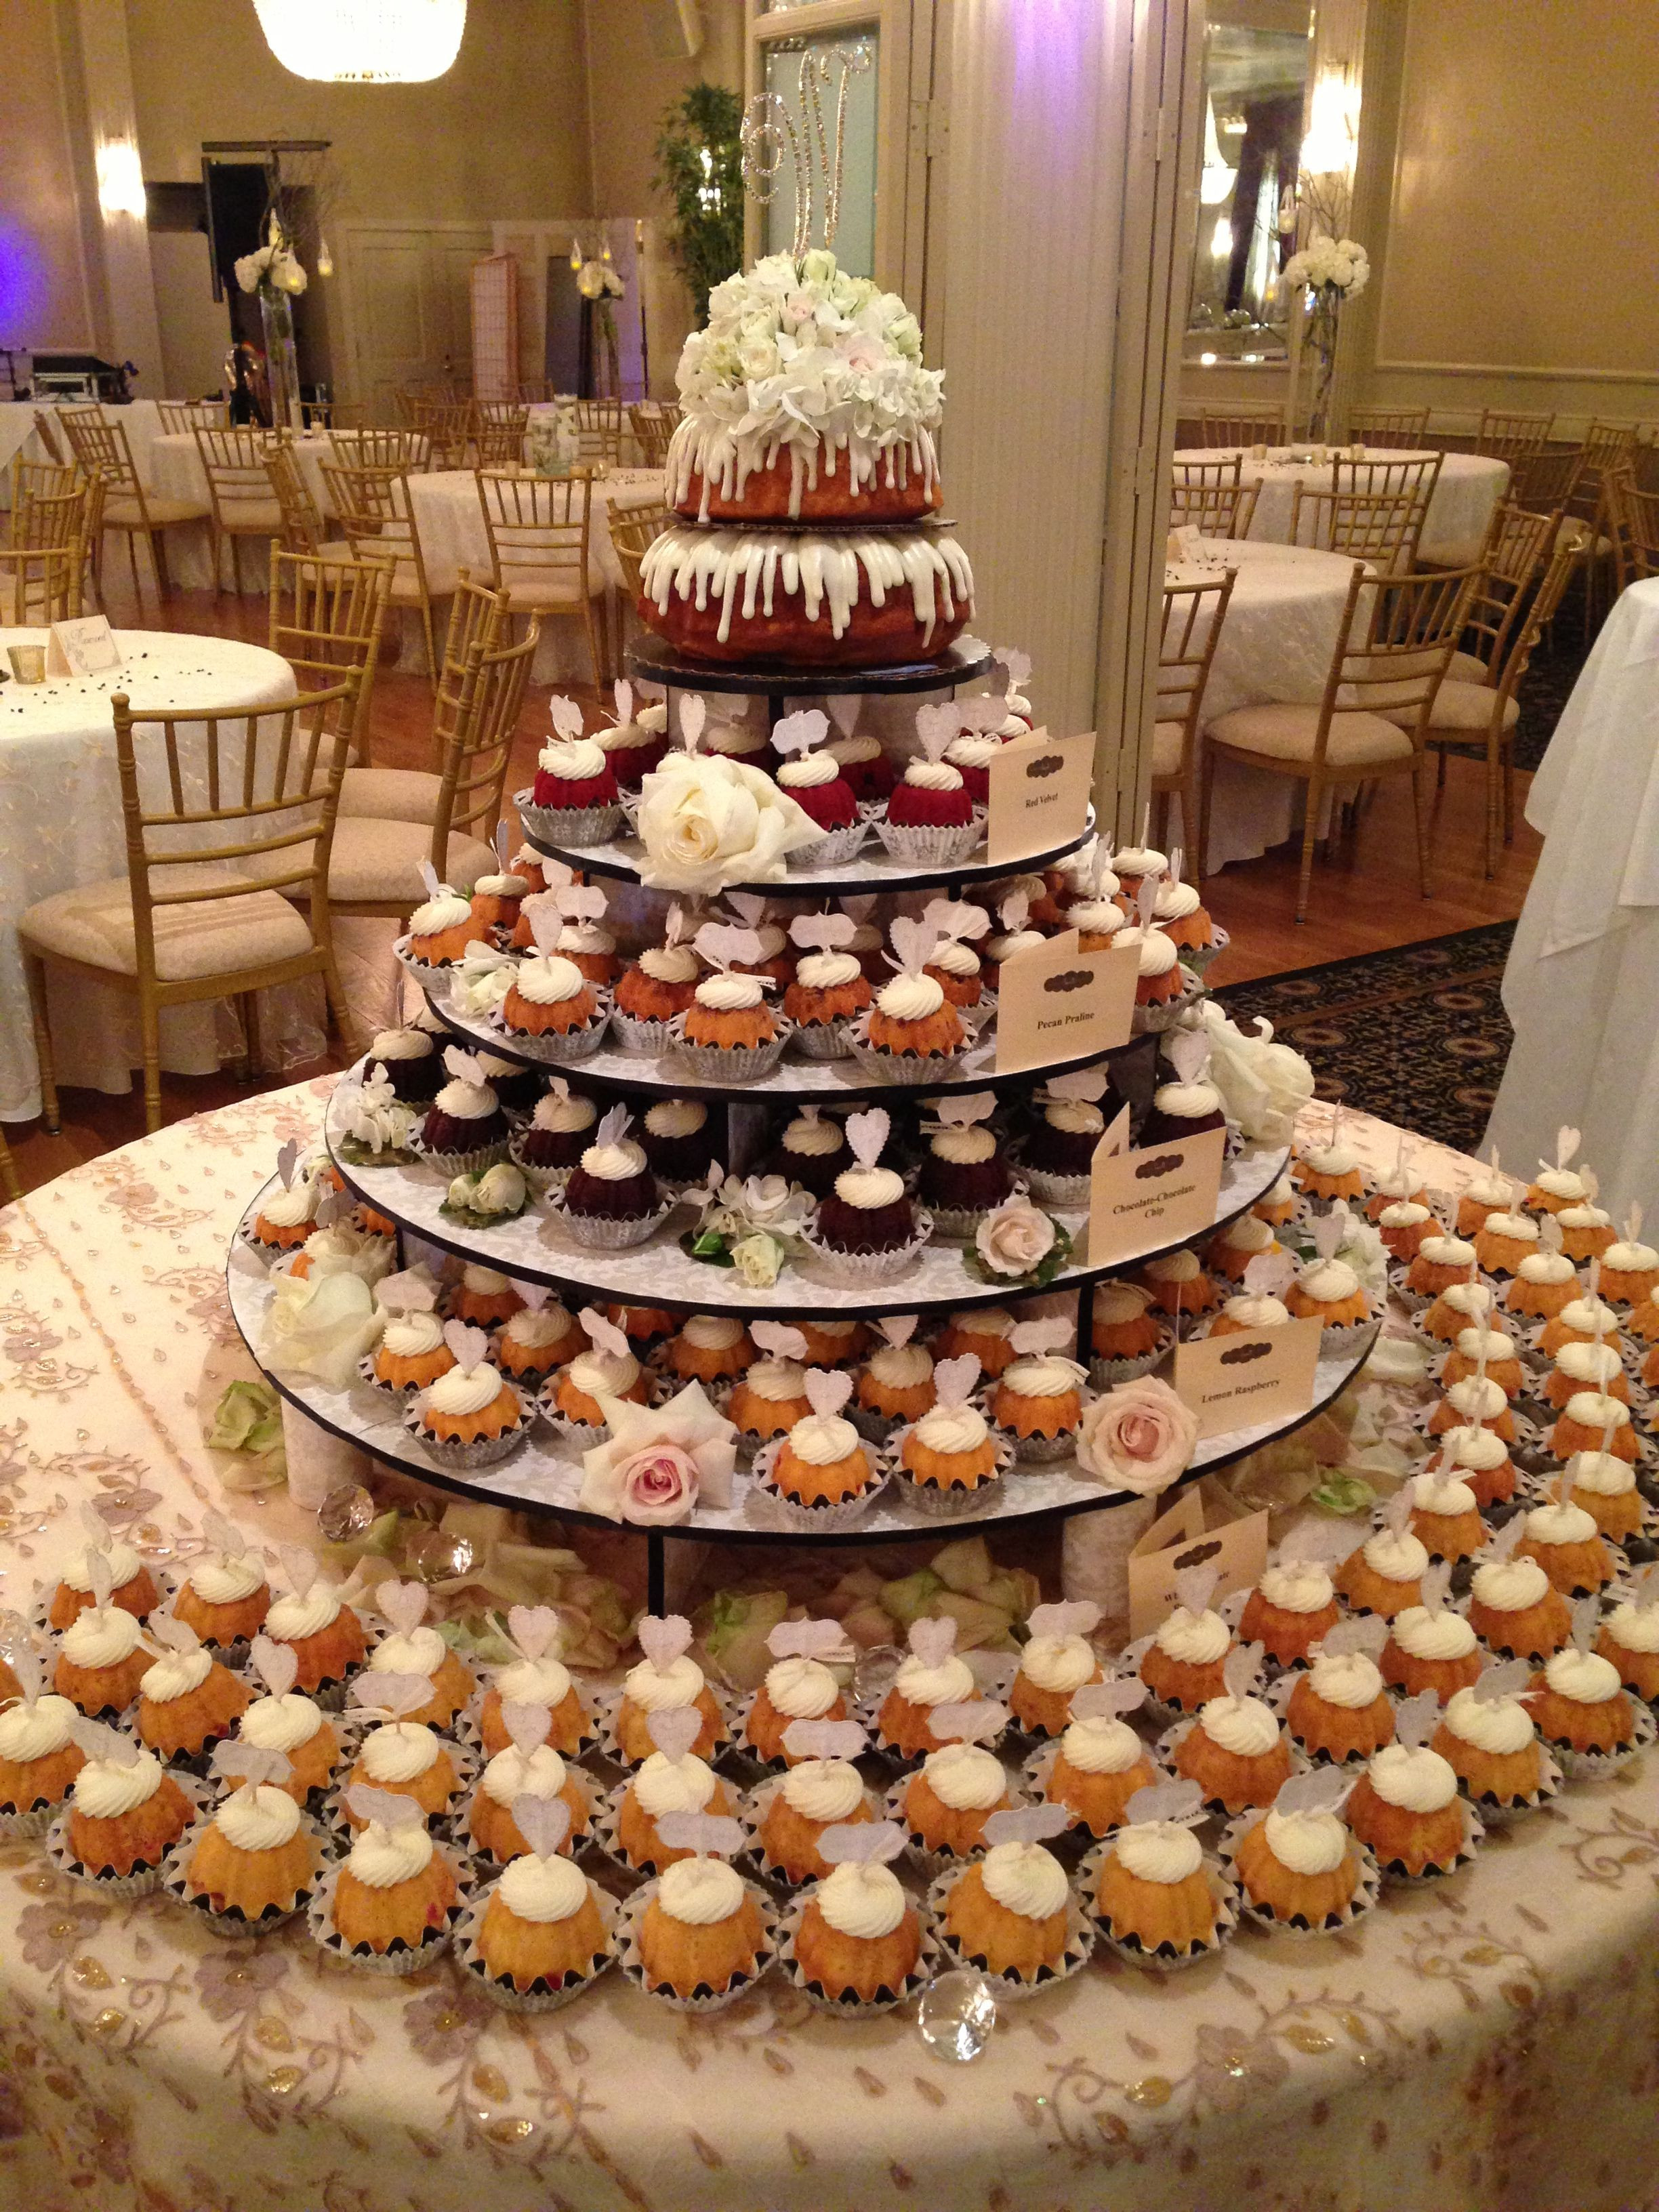 Nothing Bundt Cakes Wedding  Maybe this is the way to go d just have a small cake